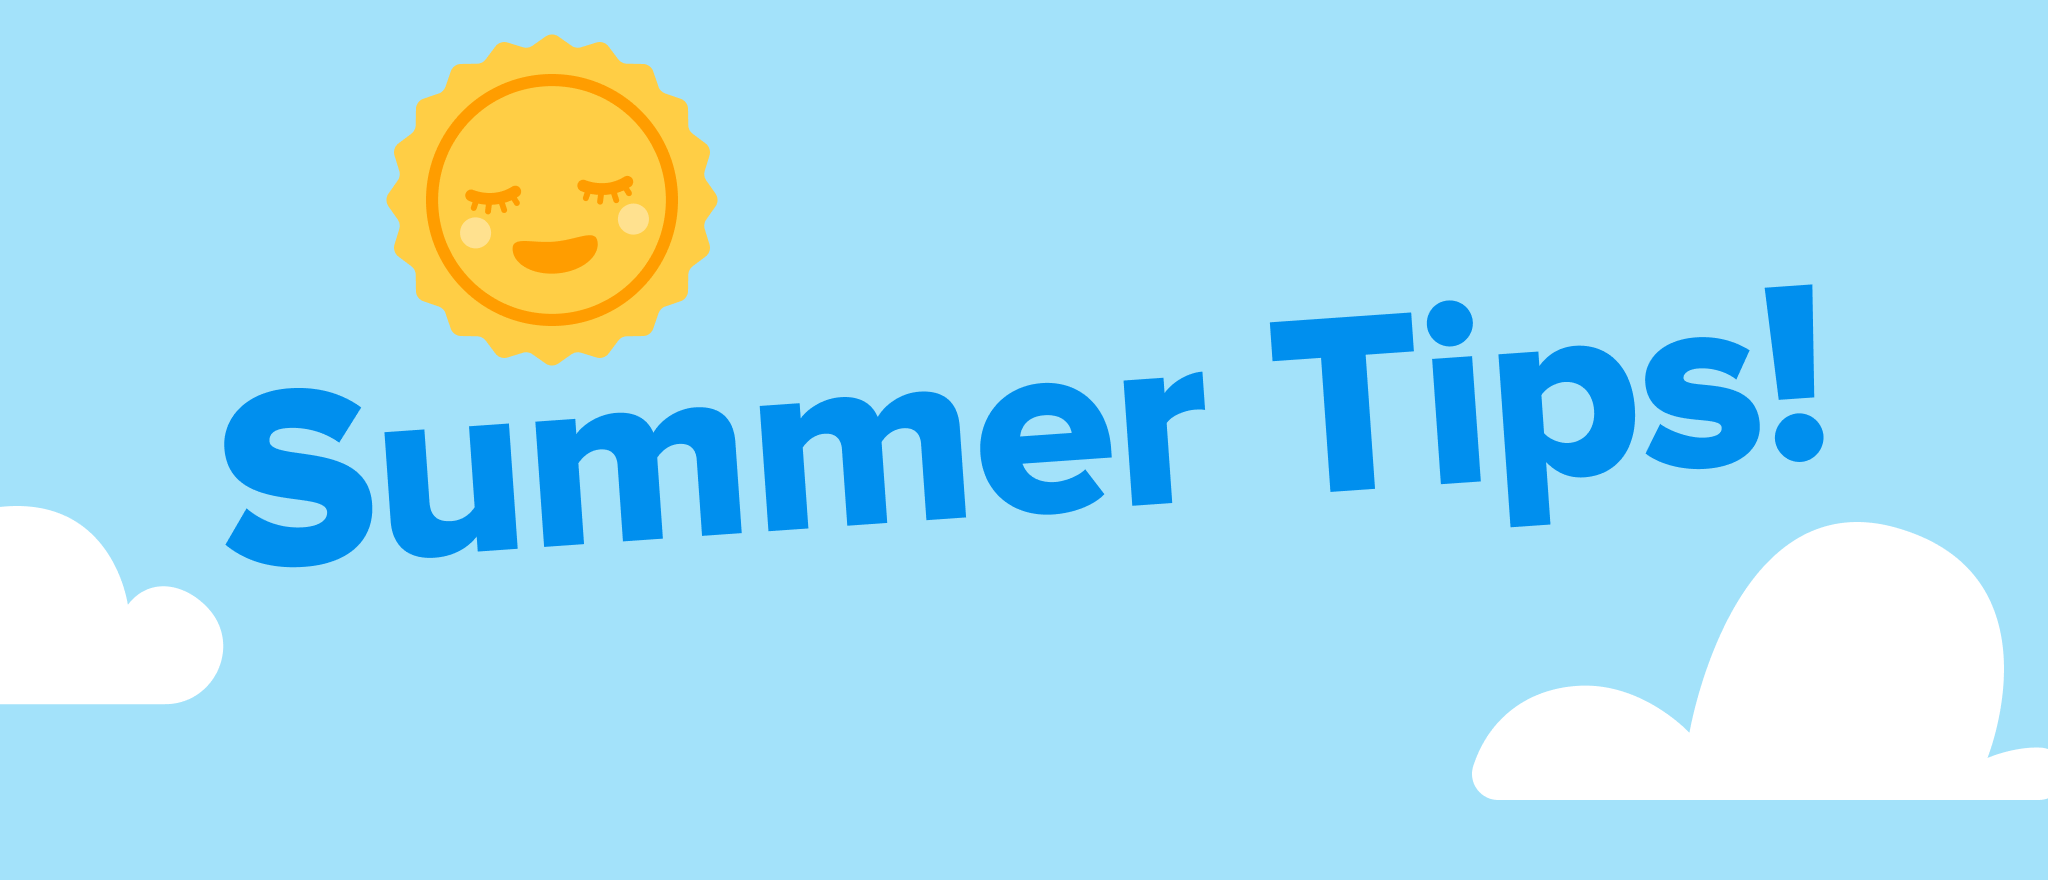 Summer tip part 7: What would you like to share from your week?